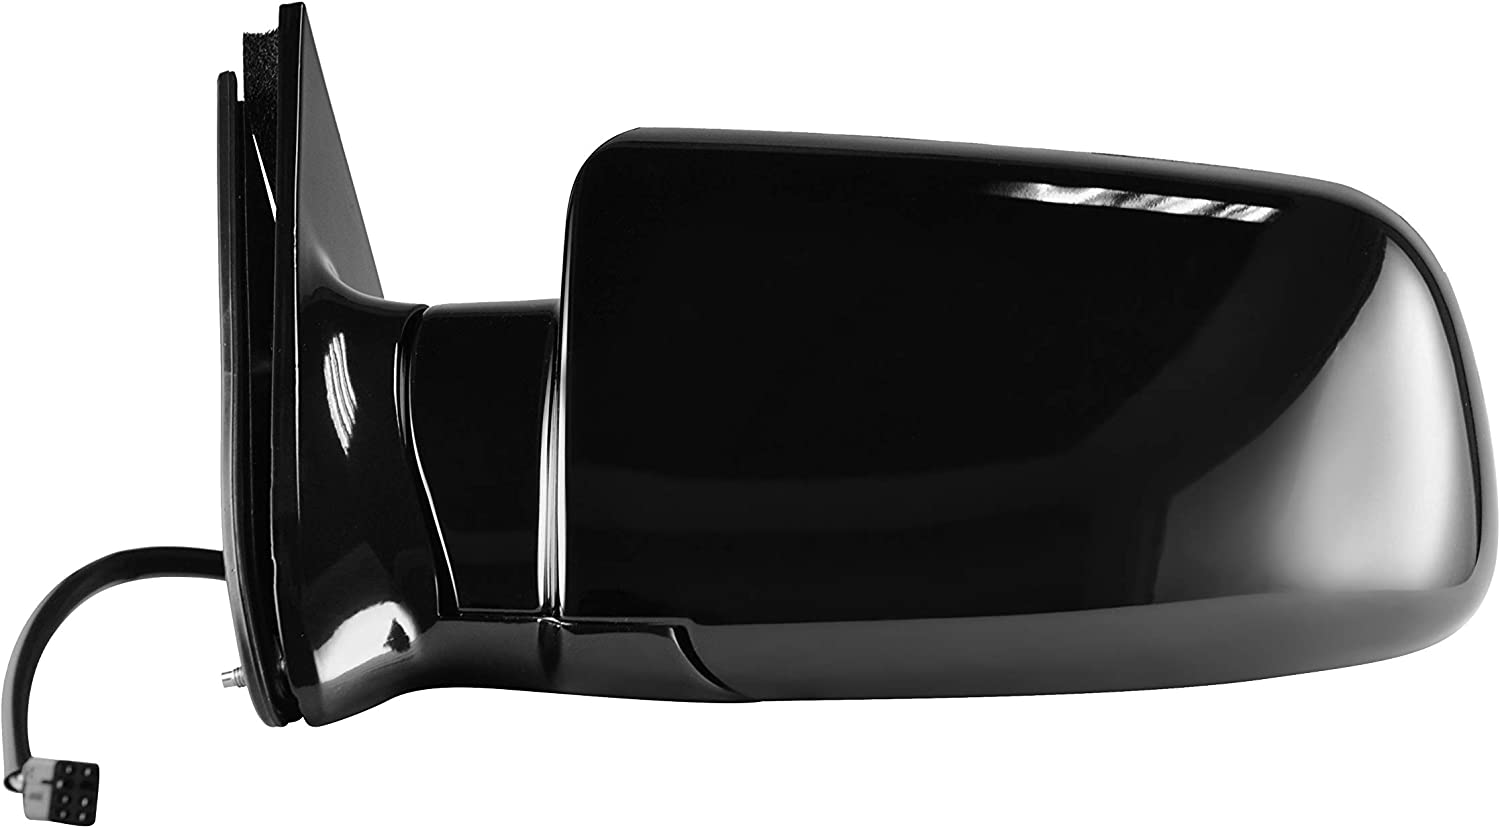 Parts Link #: GM1320276 Power Operated Side View Mirror for 1988-2000 C//K 1500 Chevy GMC Truck Suburban Heated Left Driver Side Painted Black